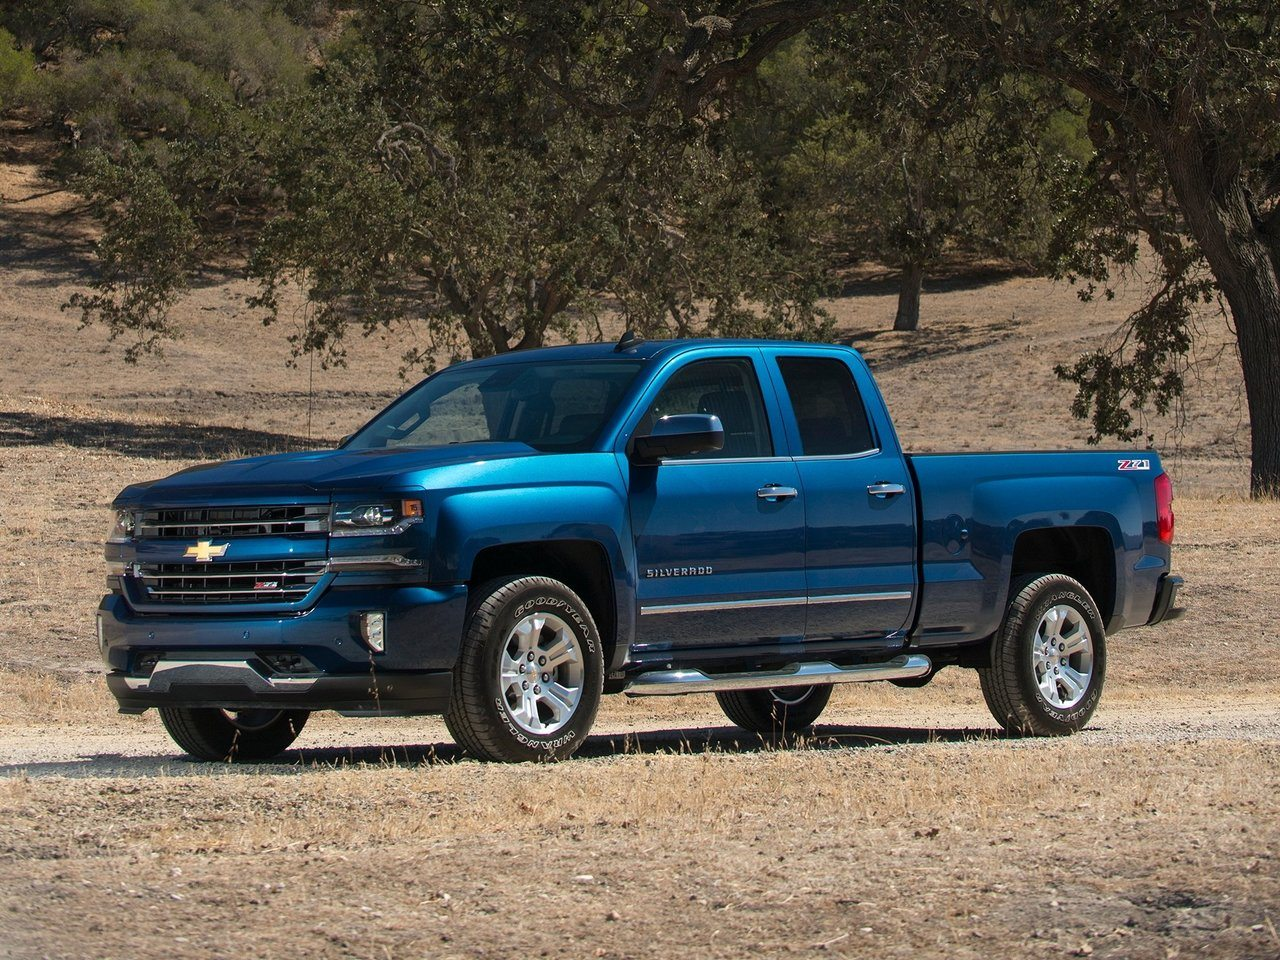 2018 Chevrolet Silverado | 2018 Auto Review Guide | Autos Specs, Prices and Release Date